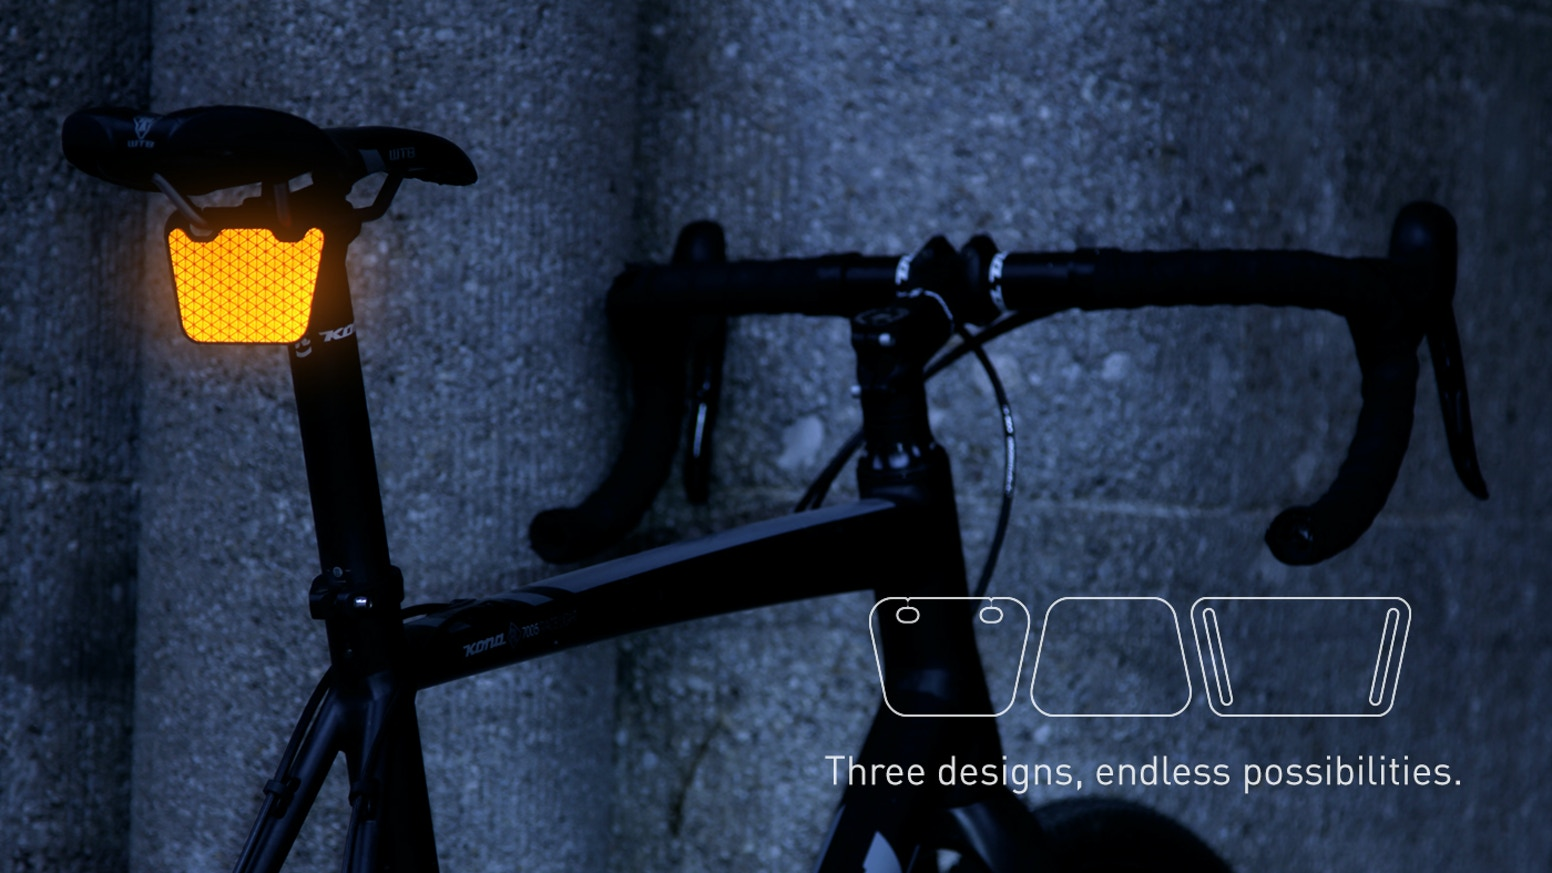 Be seen instantly. Everywhere. Just clip it to your bike, bag or clothing. Three designs, endless possibilities.